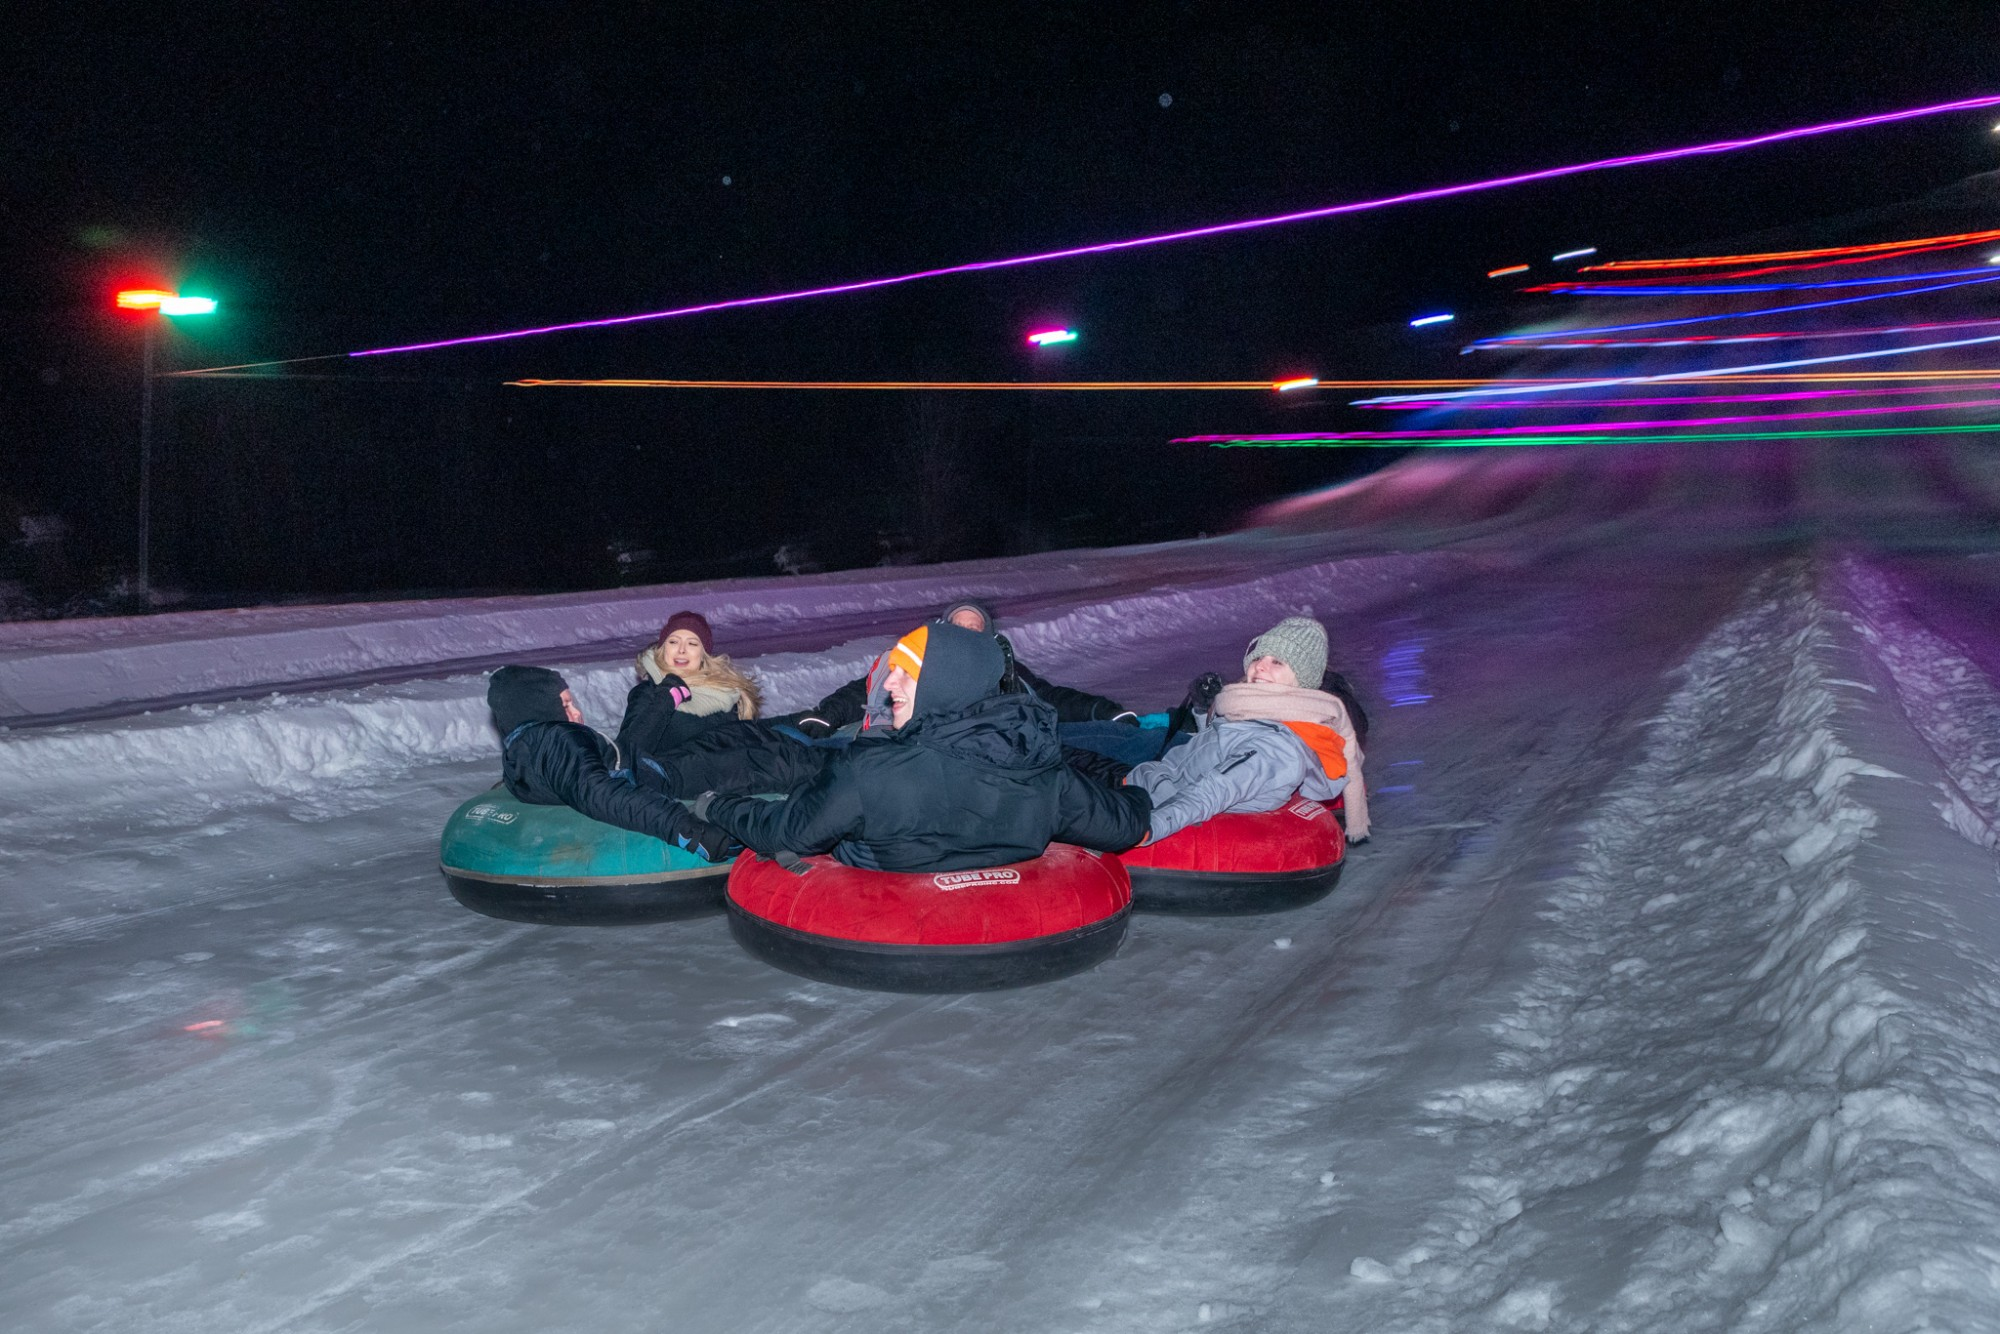 Glow Tubing at Snow Trails with LED String Lights and LED Tower Lights Illuminating Snow Tubing